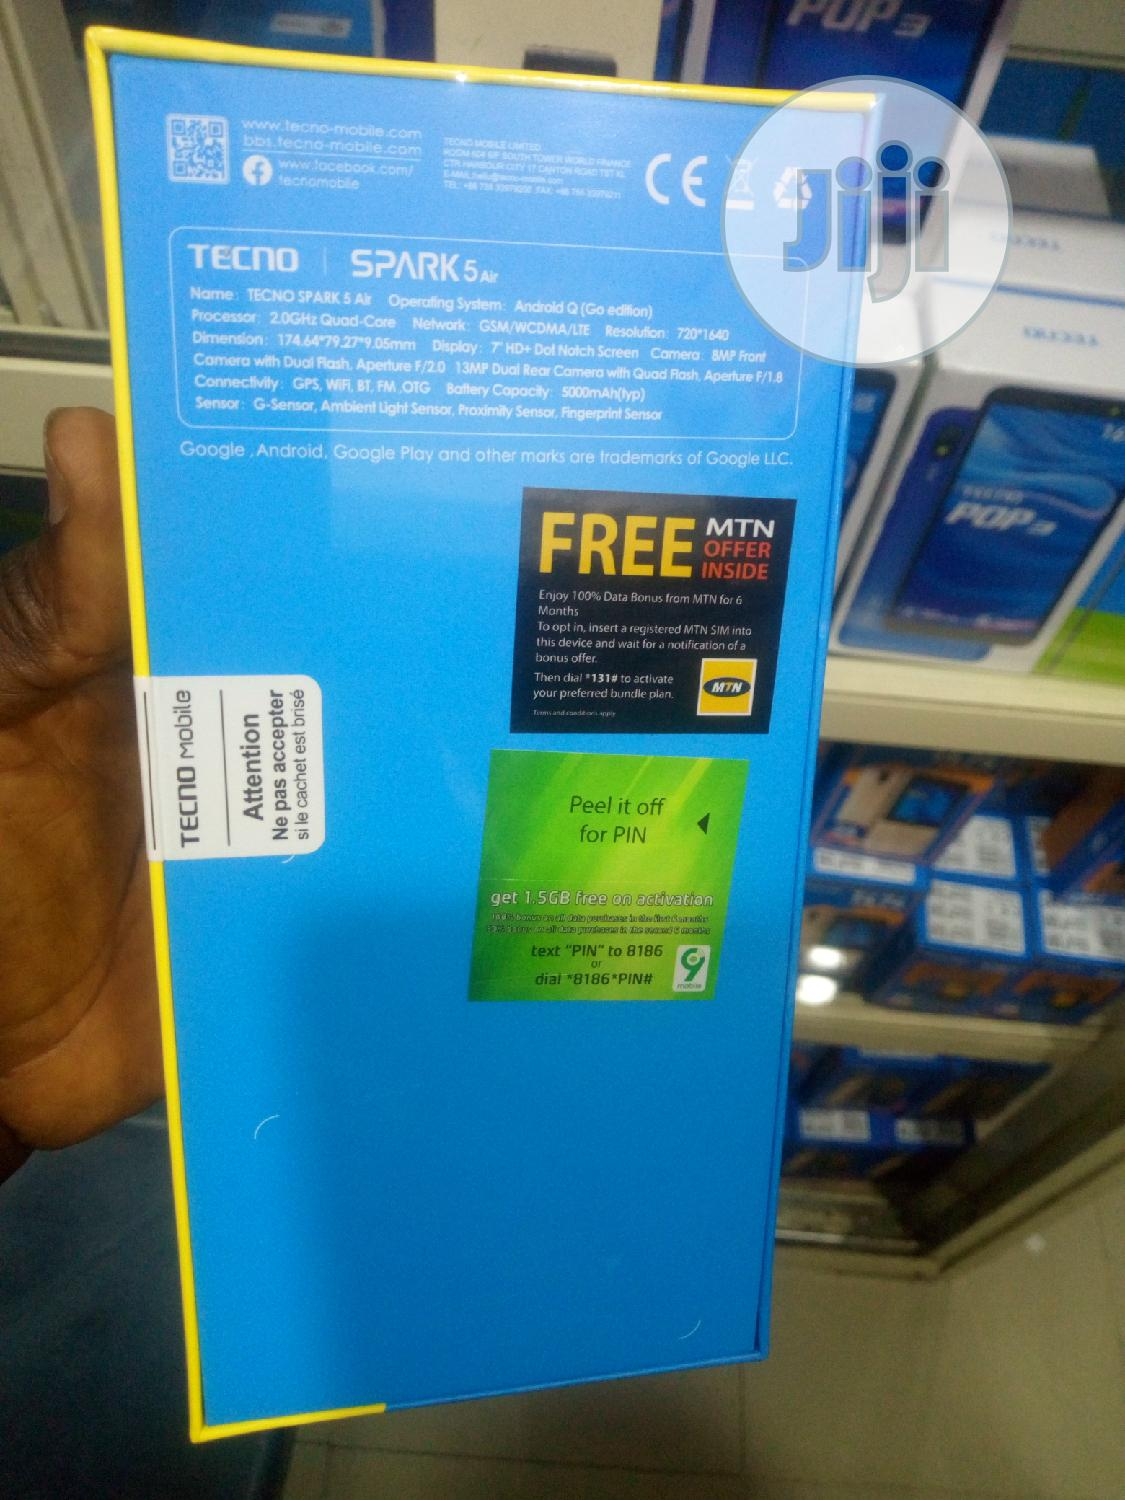 New Tecno Spark 5 Air 32 GB | Mobile Phones for sale in Ifako-Ijaiye, Lagos State, Nigeria